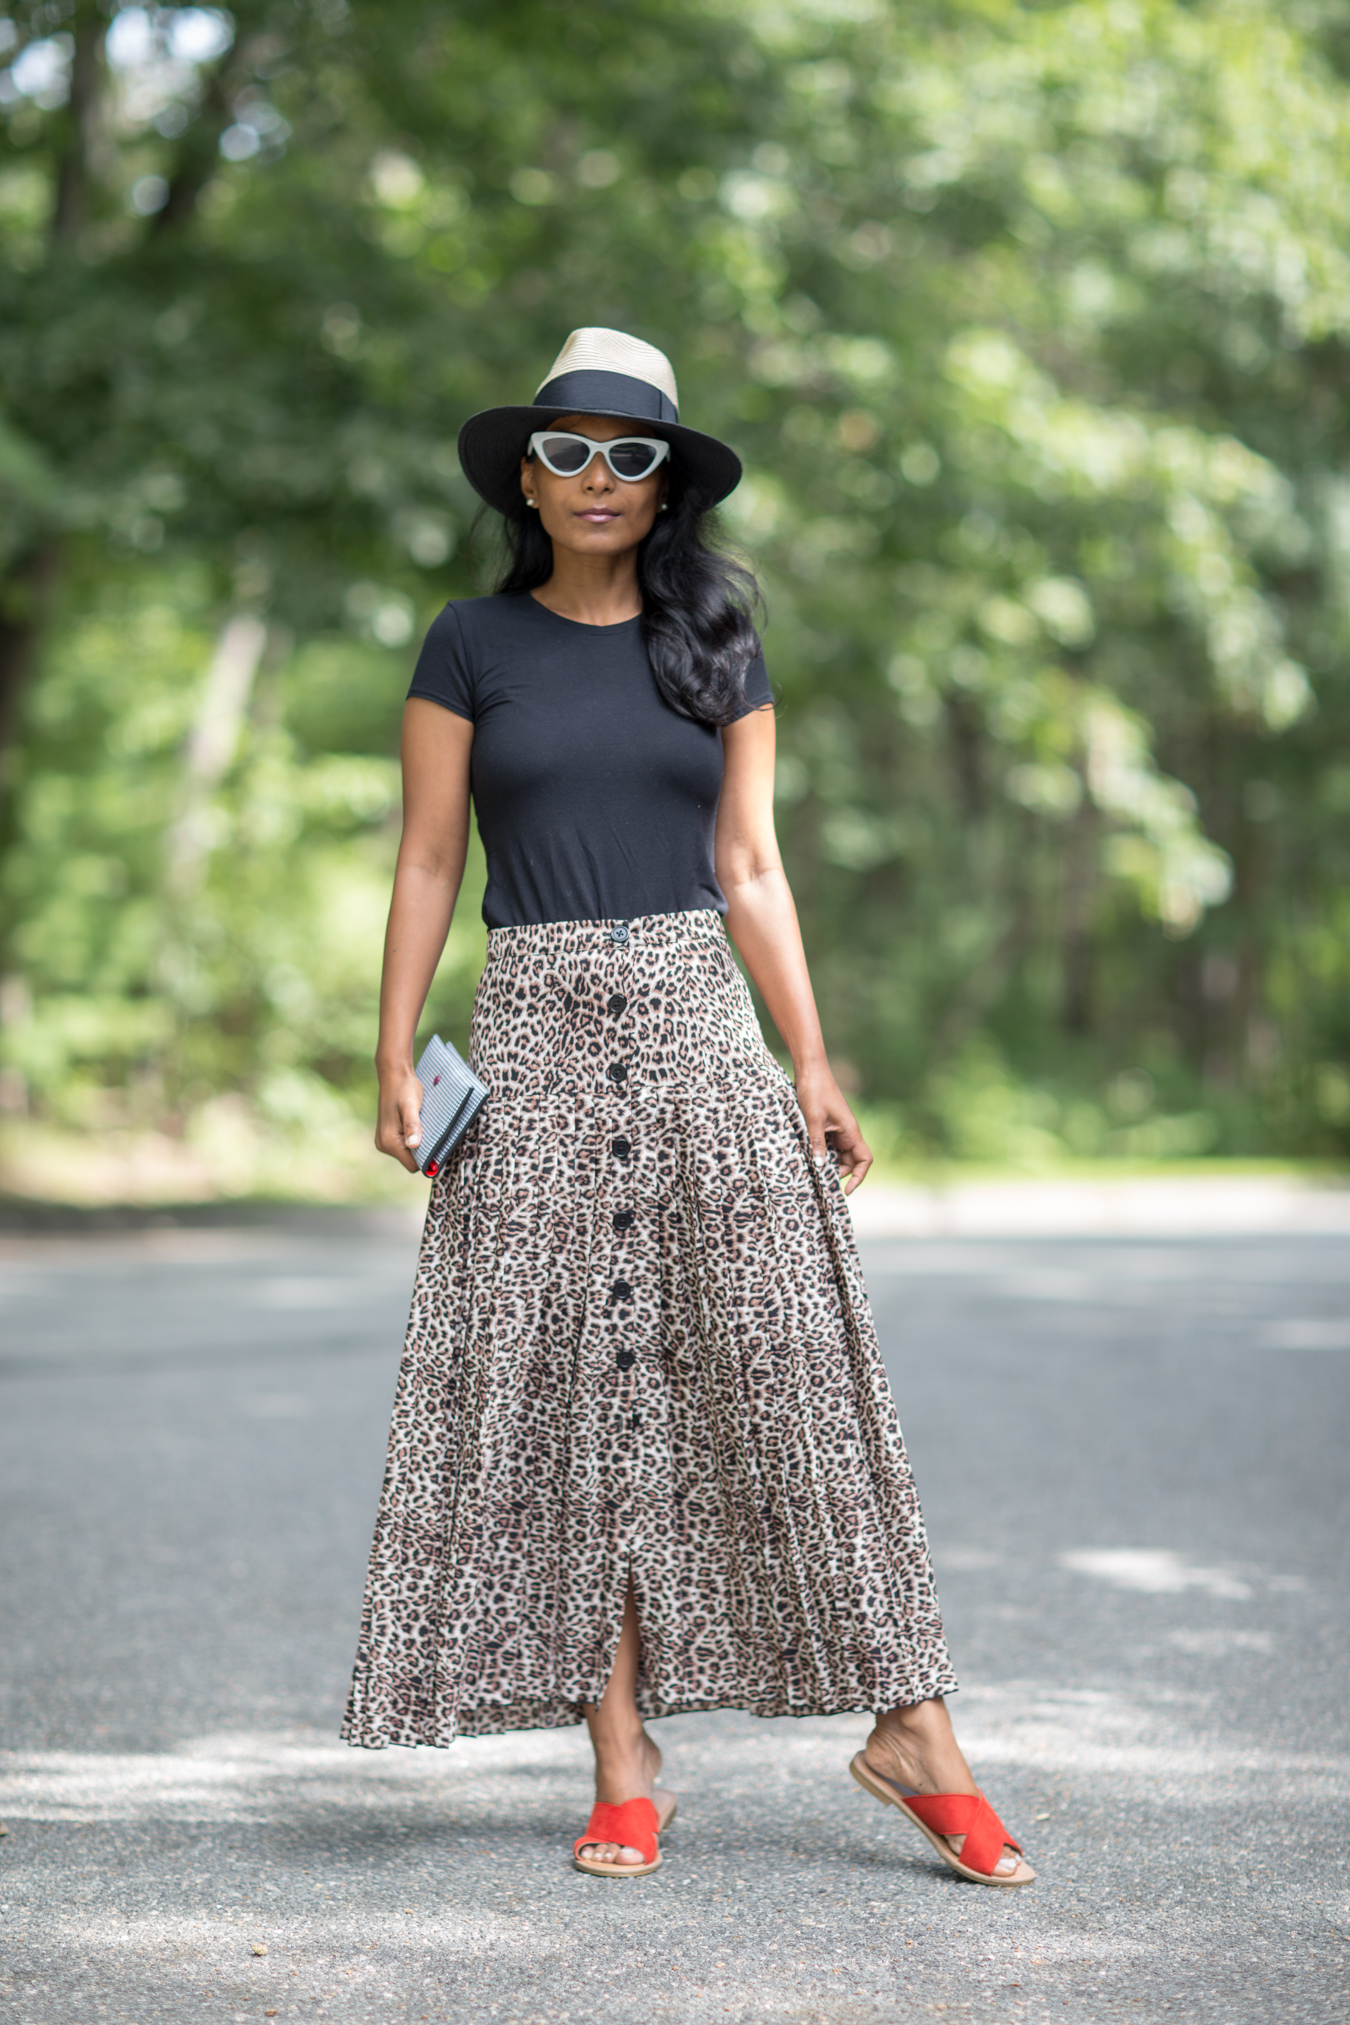 We All Want a Leopard-Printed Skirt, So Here Are the Best Ones in Stock We All Want a Leopard-Printed Skirt, So Here Are the Best Ones in Stock new pics